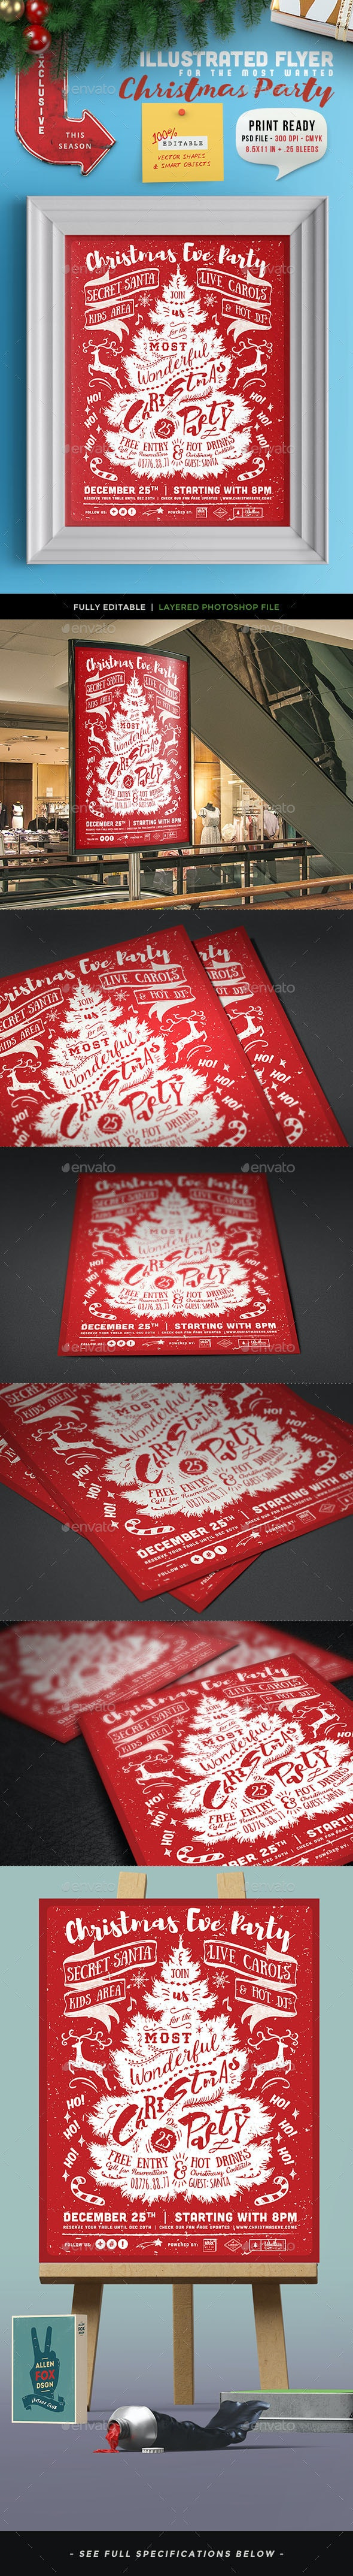 Illustrated Christmas Party Invitation II - Events Flyers